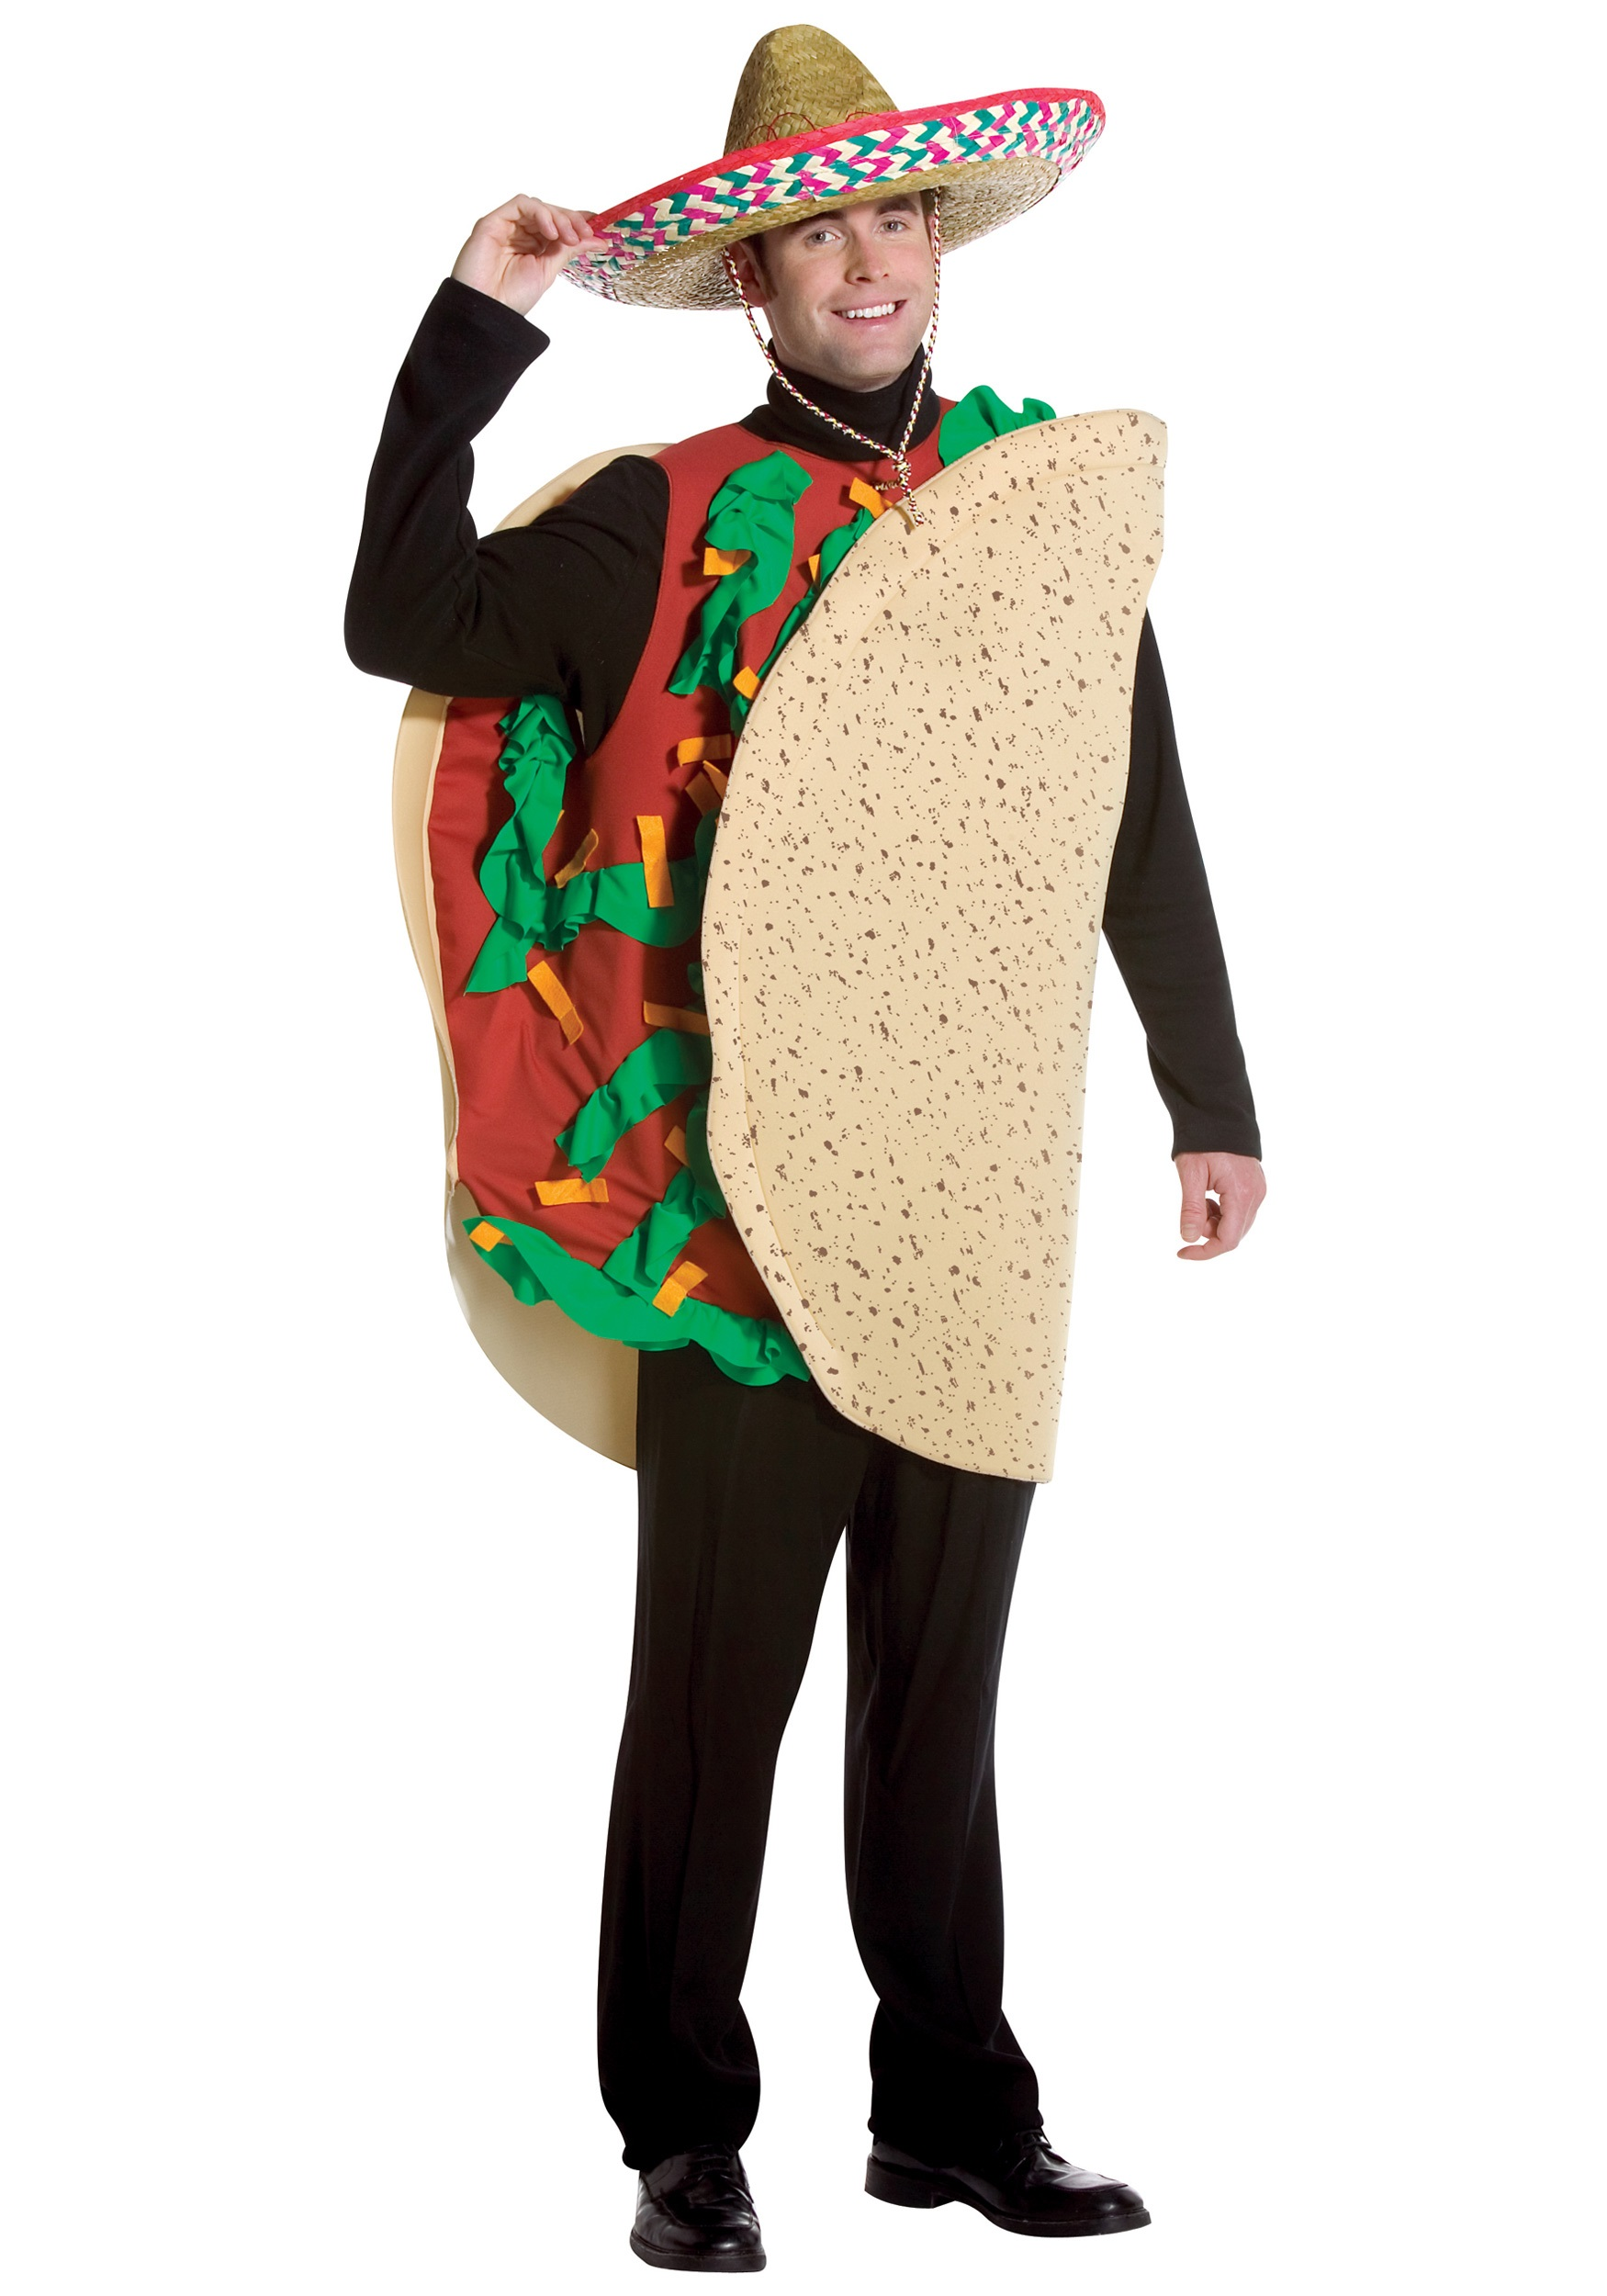 best halloween costumes ideas on Home Top Costume Idea Searches Funny Halloween Costume Ideas Adult  sc 1 st  male halloween costume ideas & male halloween costume ideas: October 2012